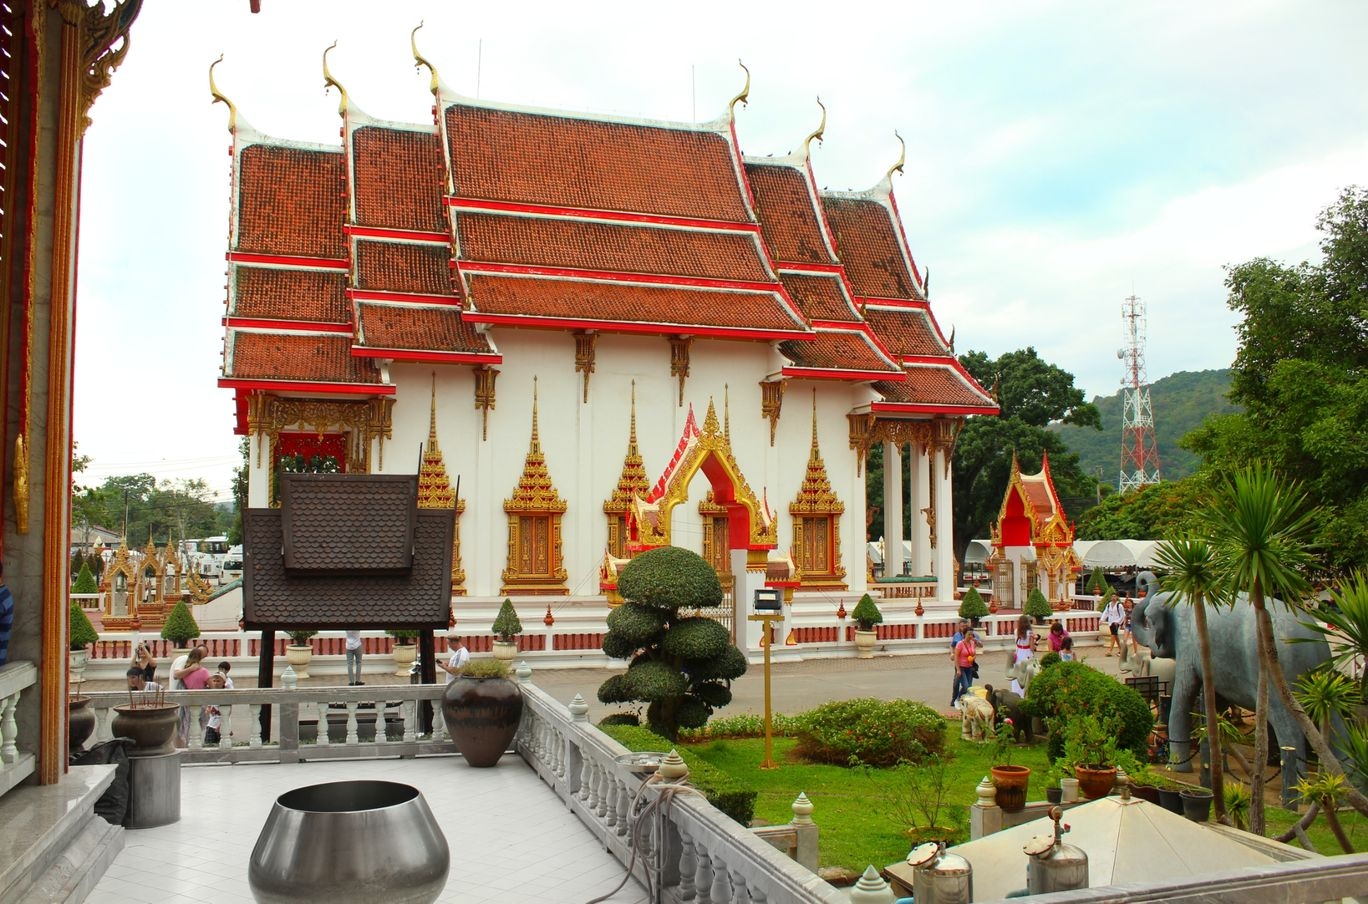 Photo of Wat Chalong By Tom Thomas Thekkekunnel